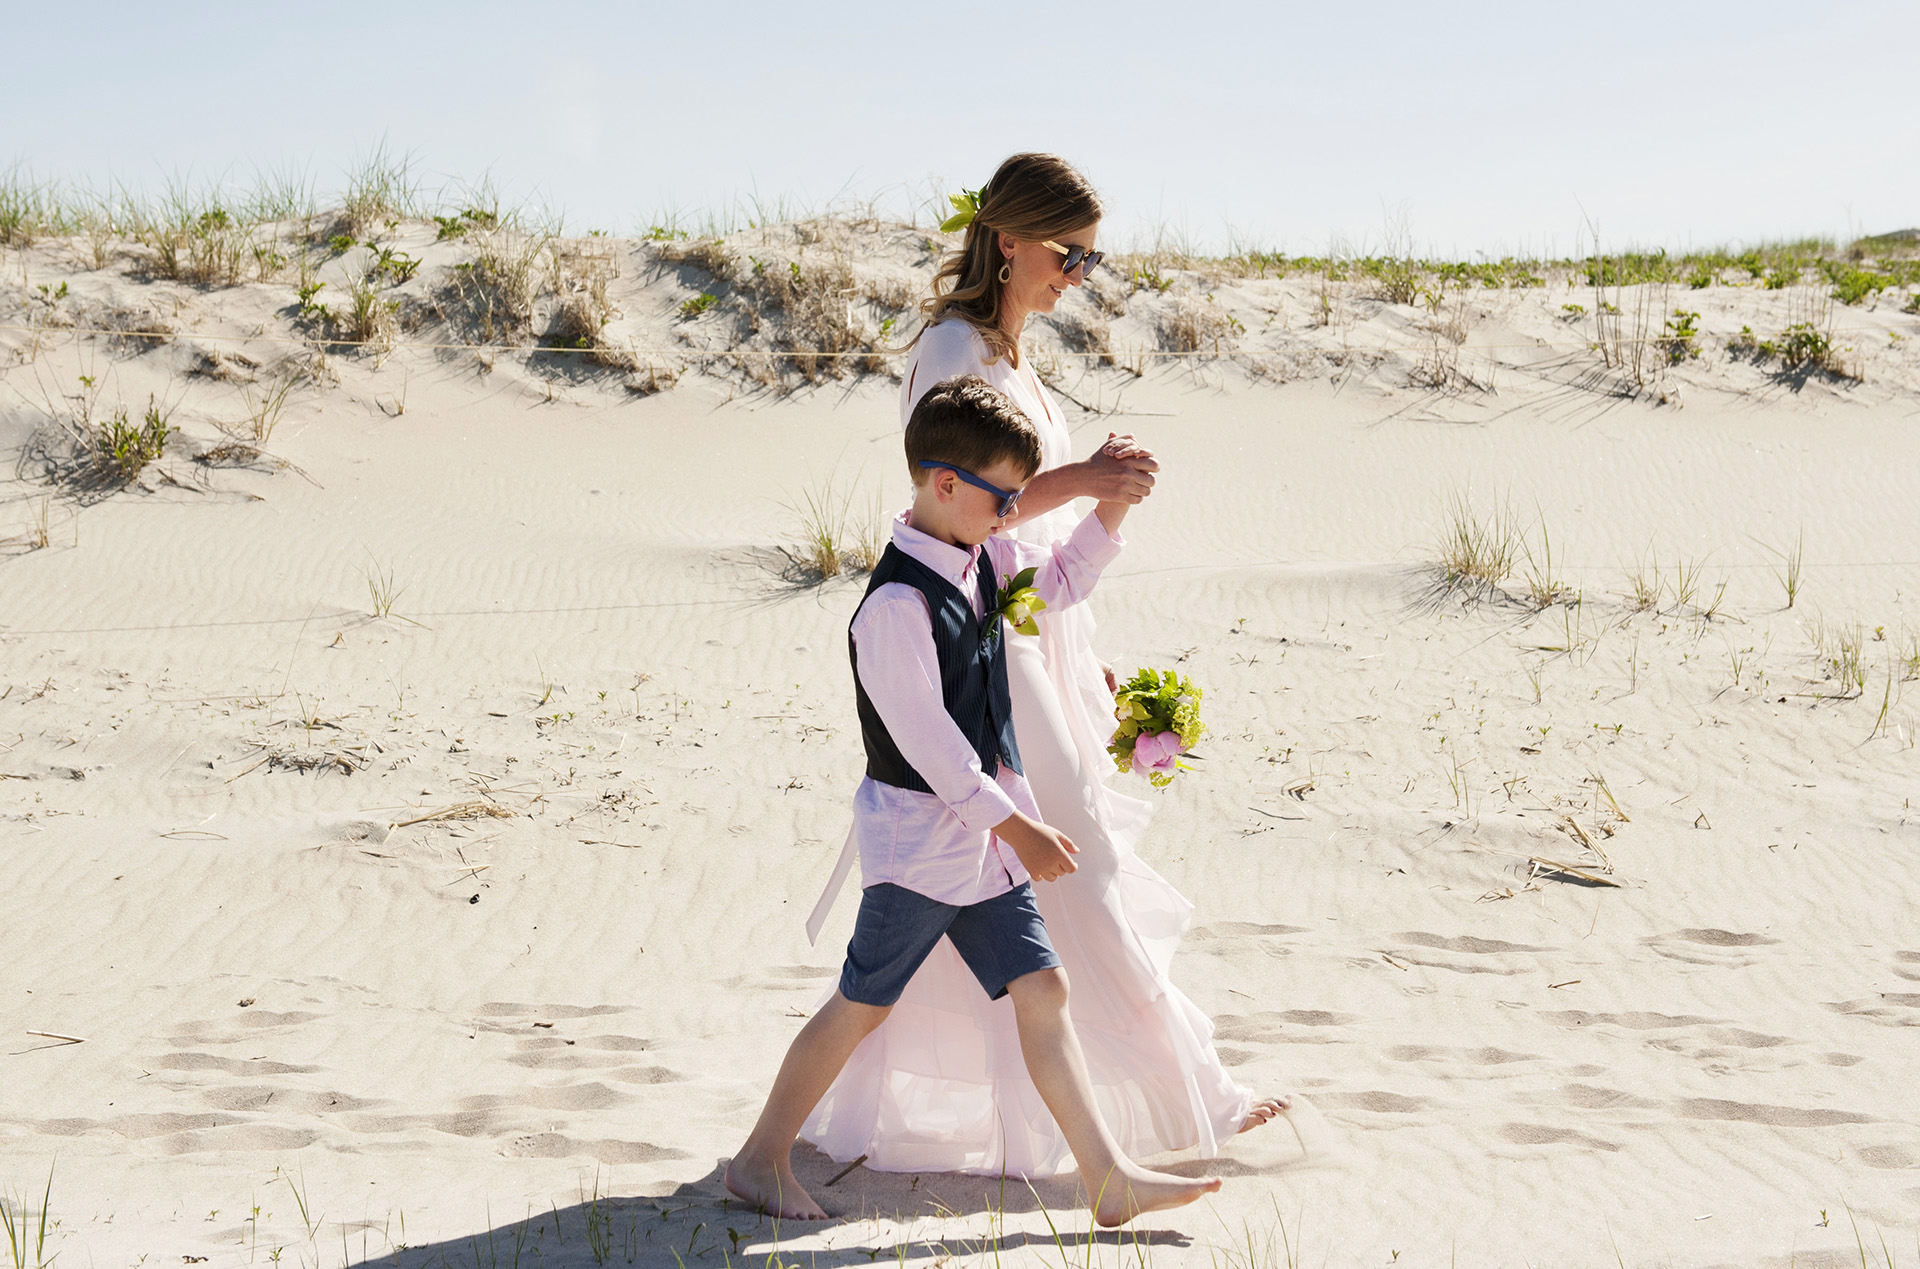 Ipswich, MA Beach Elopement Photographer   The bride and her son hold hands en route to the ceremony location